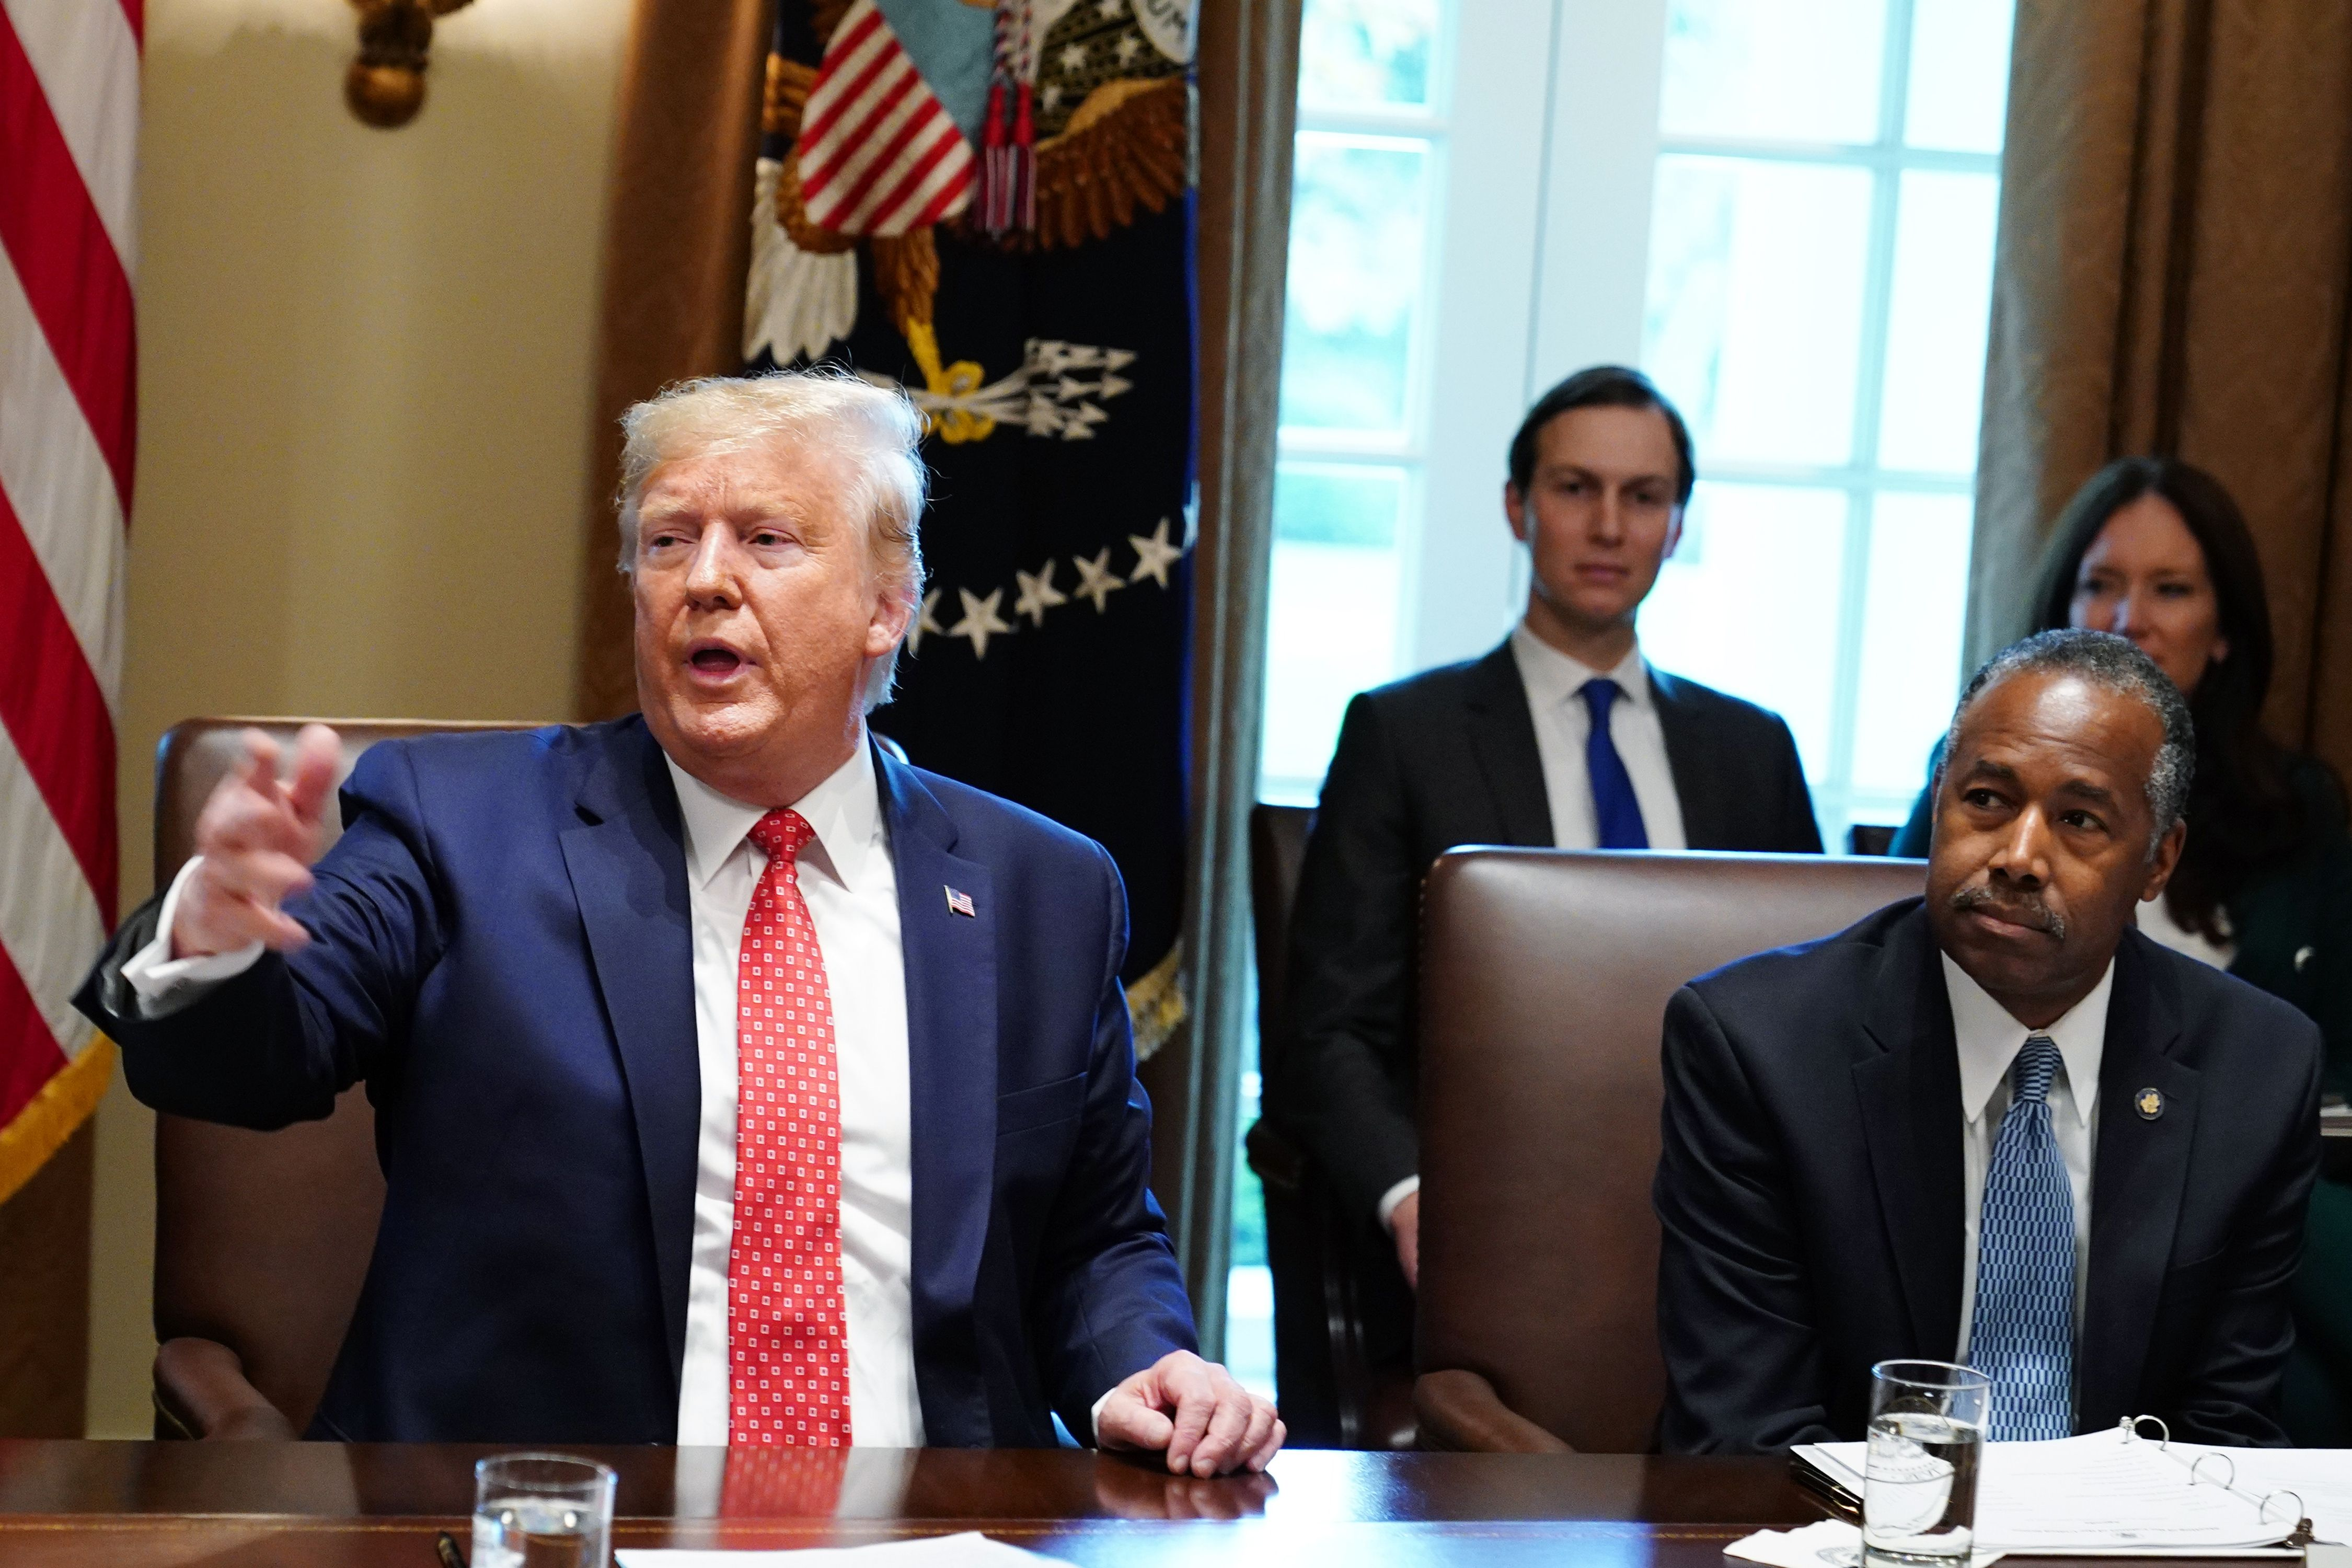 US President Donald Trump takes part in a cabinet meeting in the Cabinet Room of the White House in Washington, DC on November 19, 2019 as Ben Carson, Secretary of Housing and Urban Development looks on. (Photo by MANDEL NGAN/AFP via Getty Images)